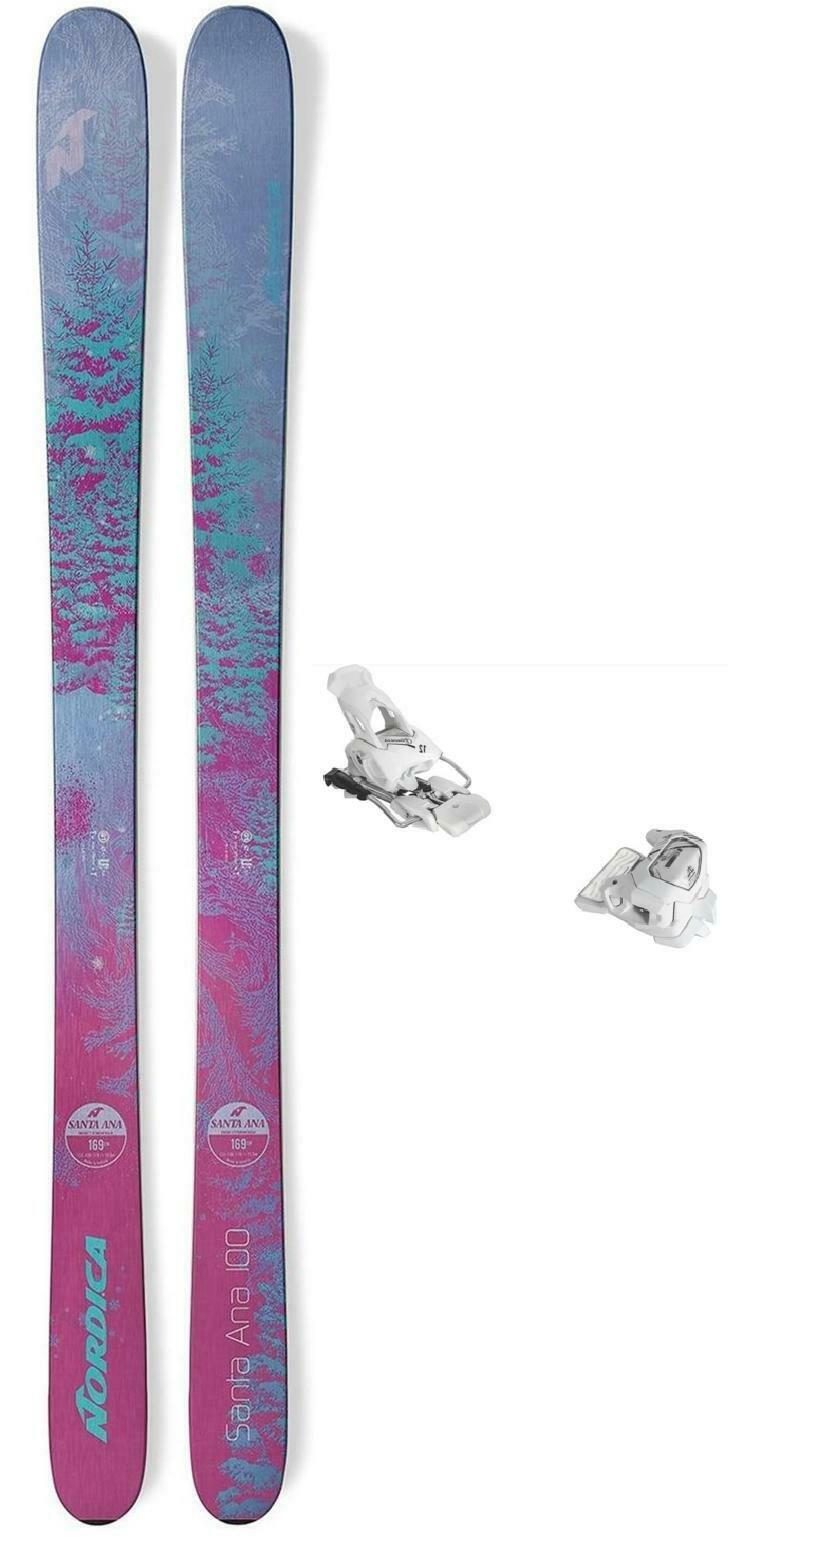 Nordica Santa Ana 100 ladies snow skis 177cm with bindings (CLEARANCE) NEW 2019